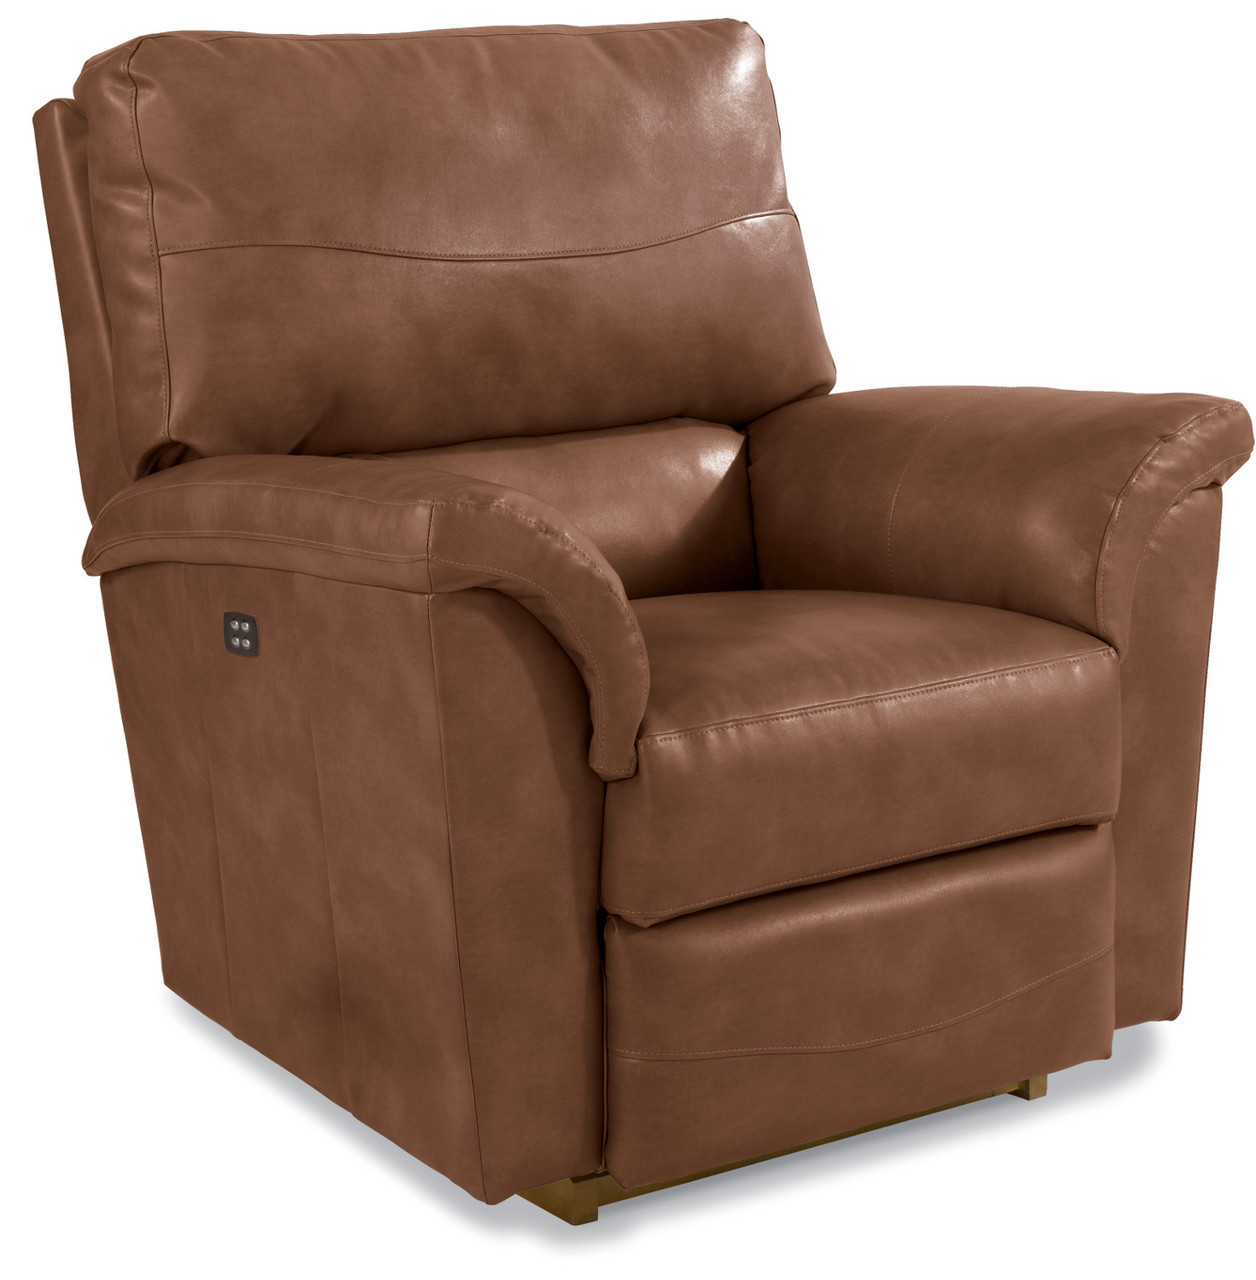 The Reese Reclina Way Recliner Sold At Rose Brothers Furniture Serving Wilmington And